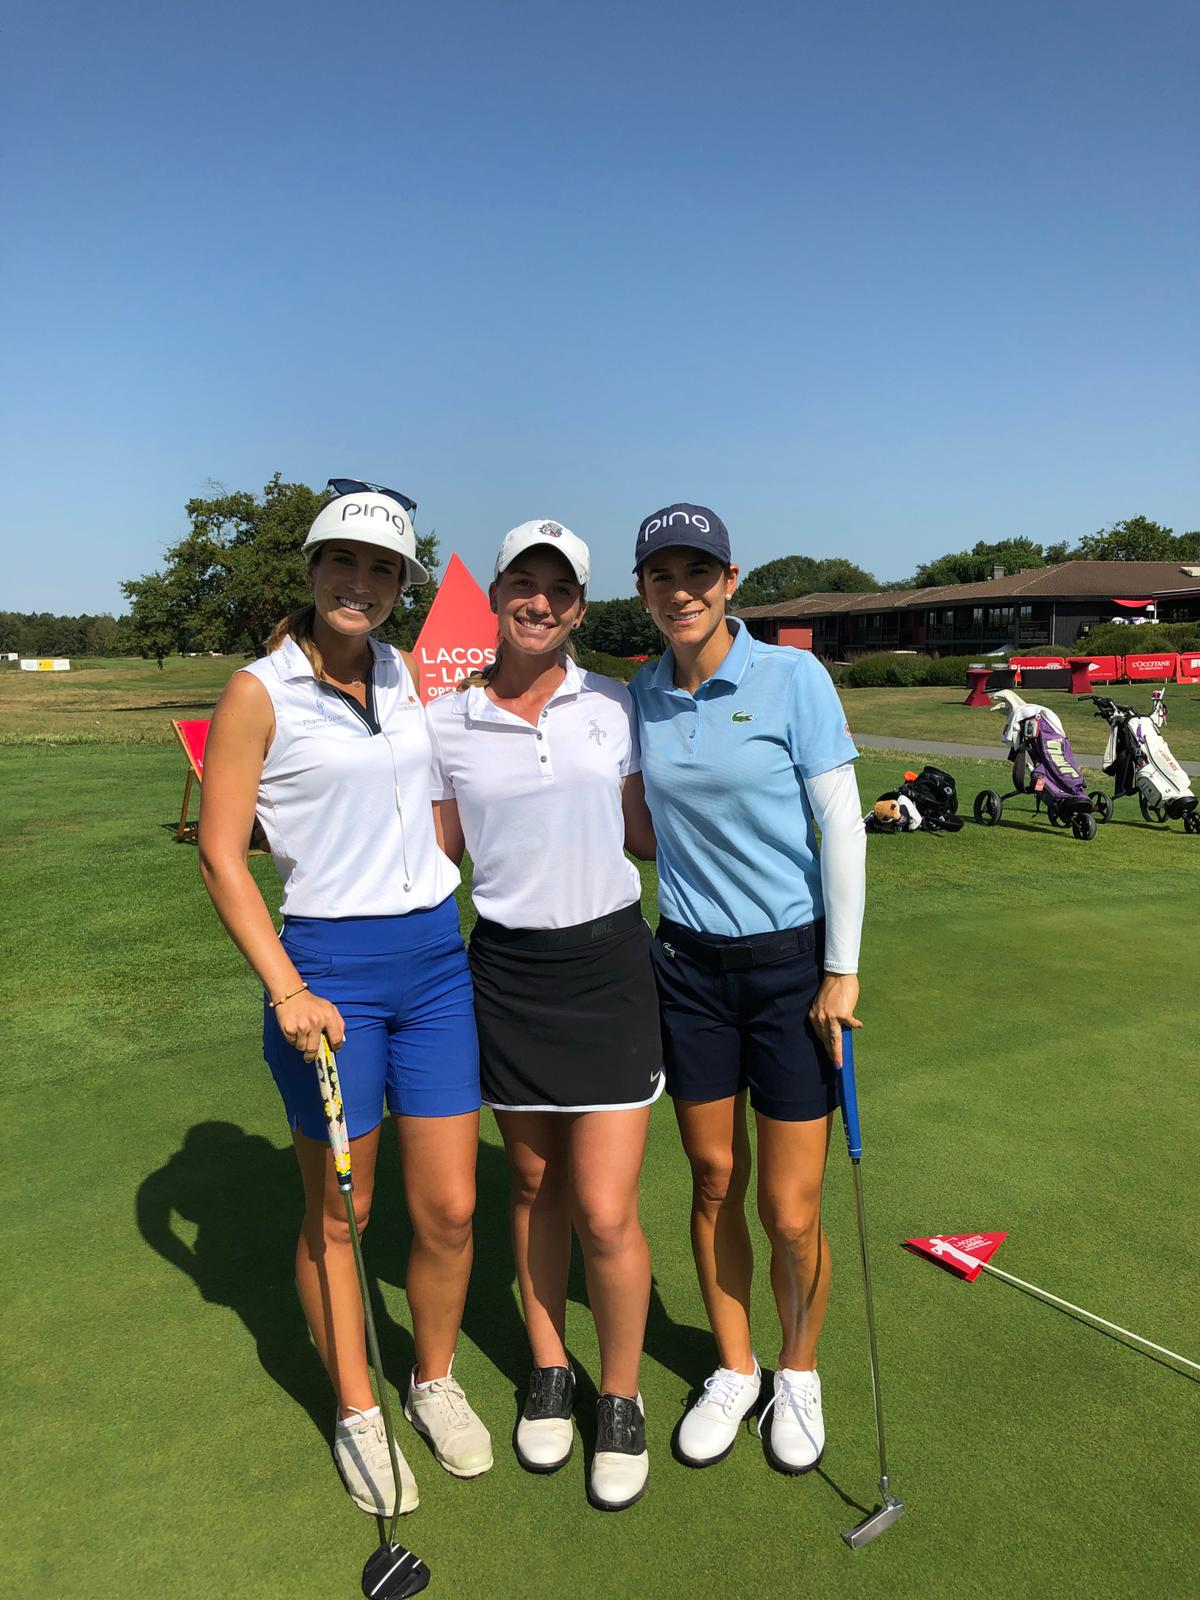 Azahara, Noemi and Laura, together again at the Lacoste Ladies French Open